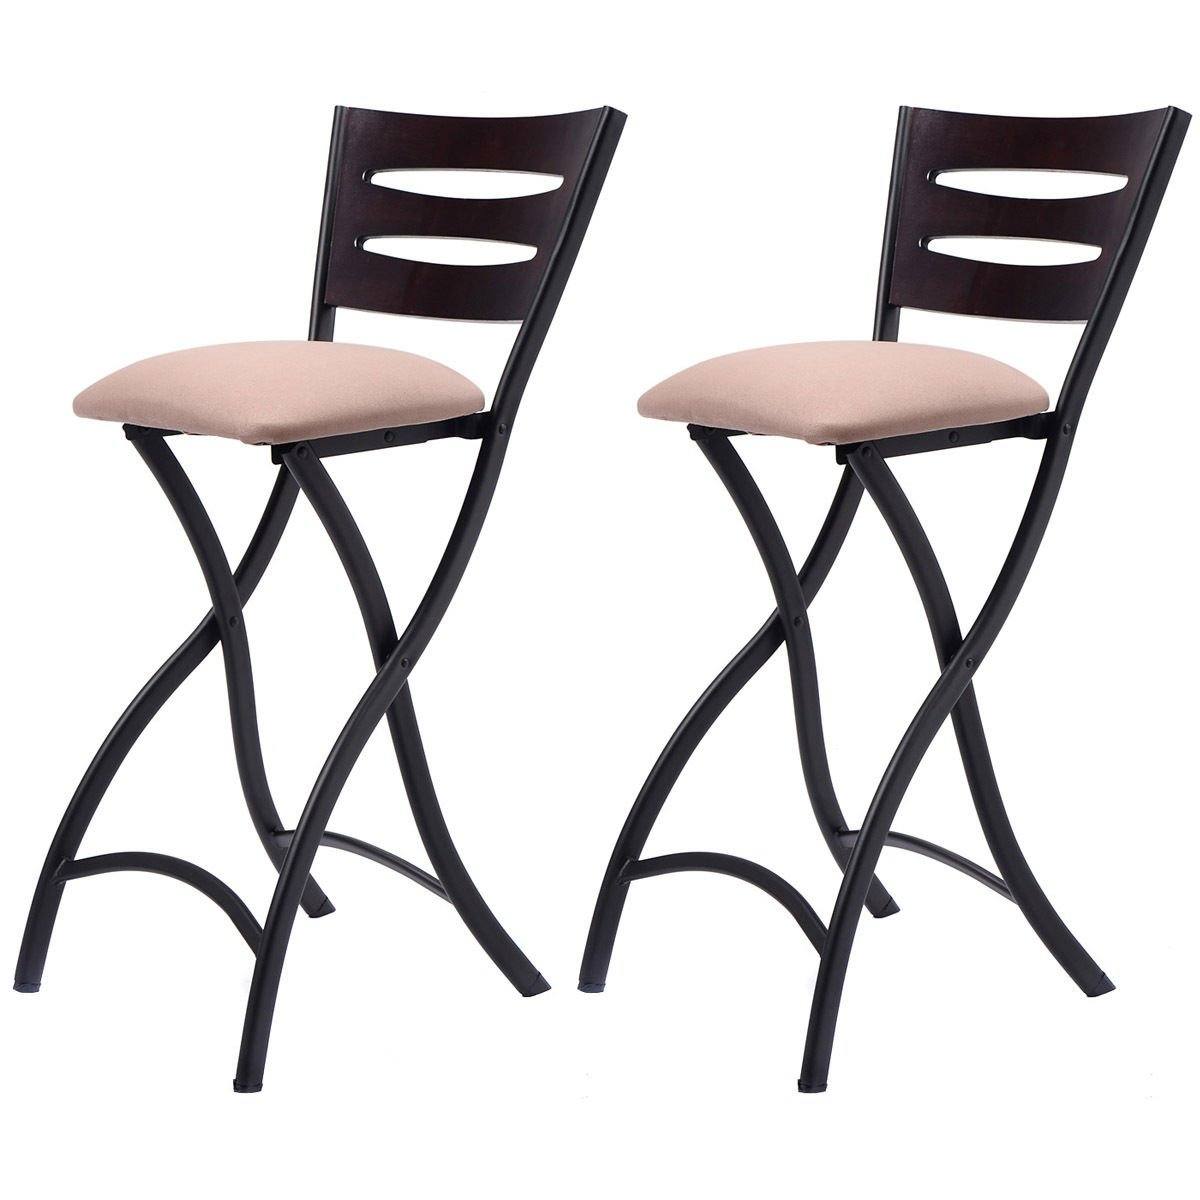 com wholesale barstools barstool stools stool folding bar globaleventsupply